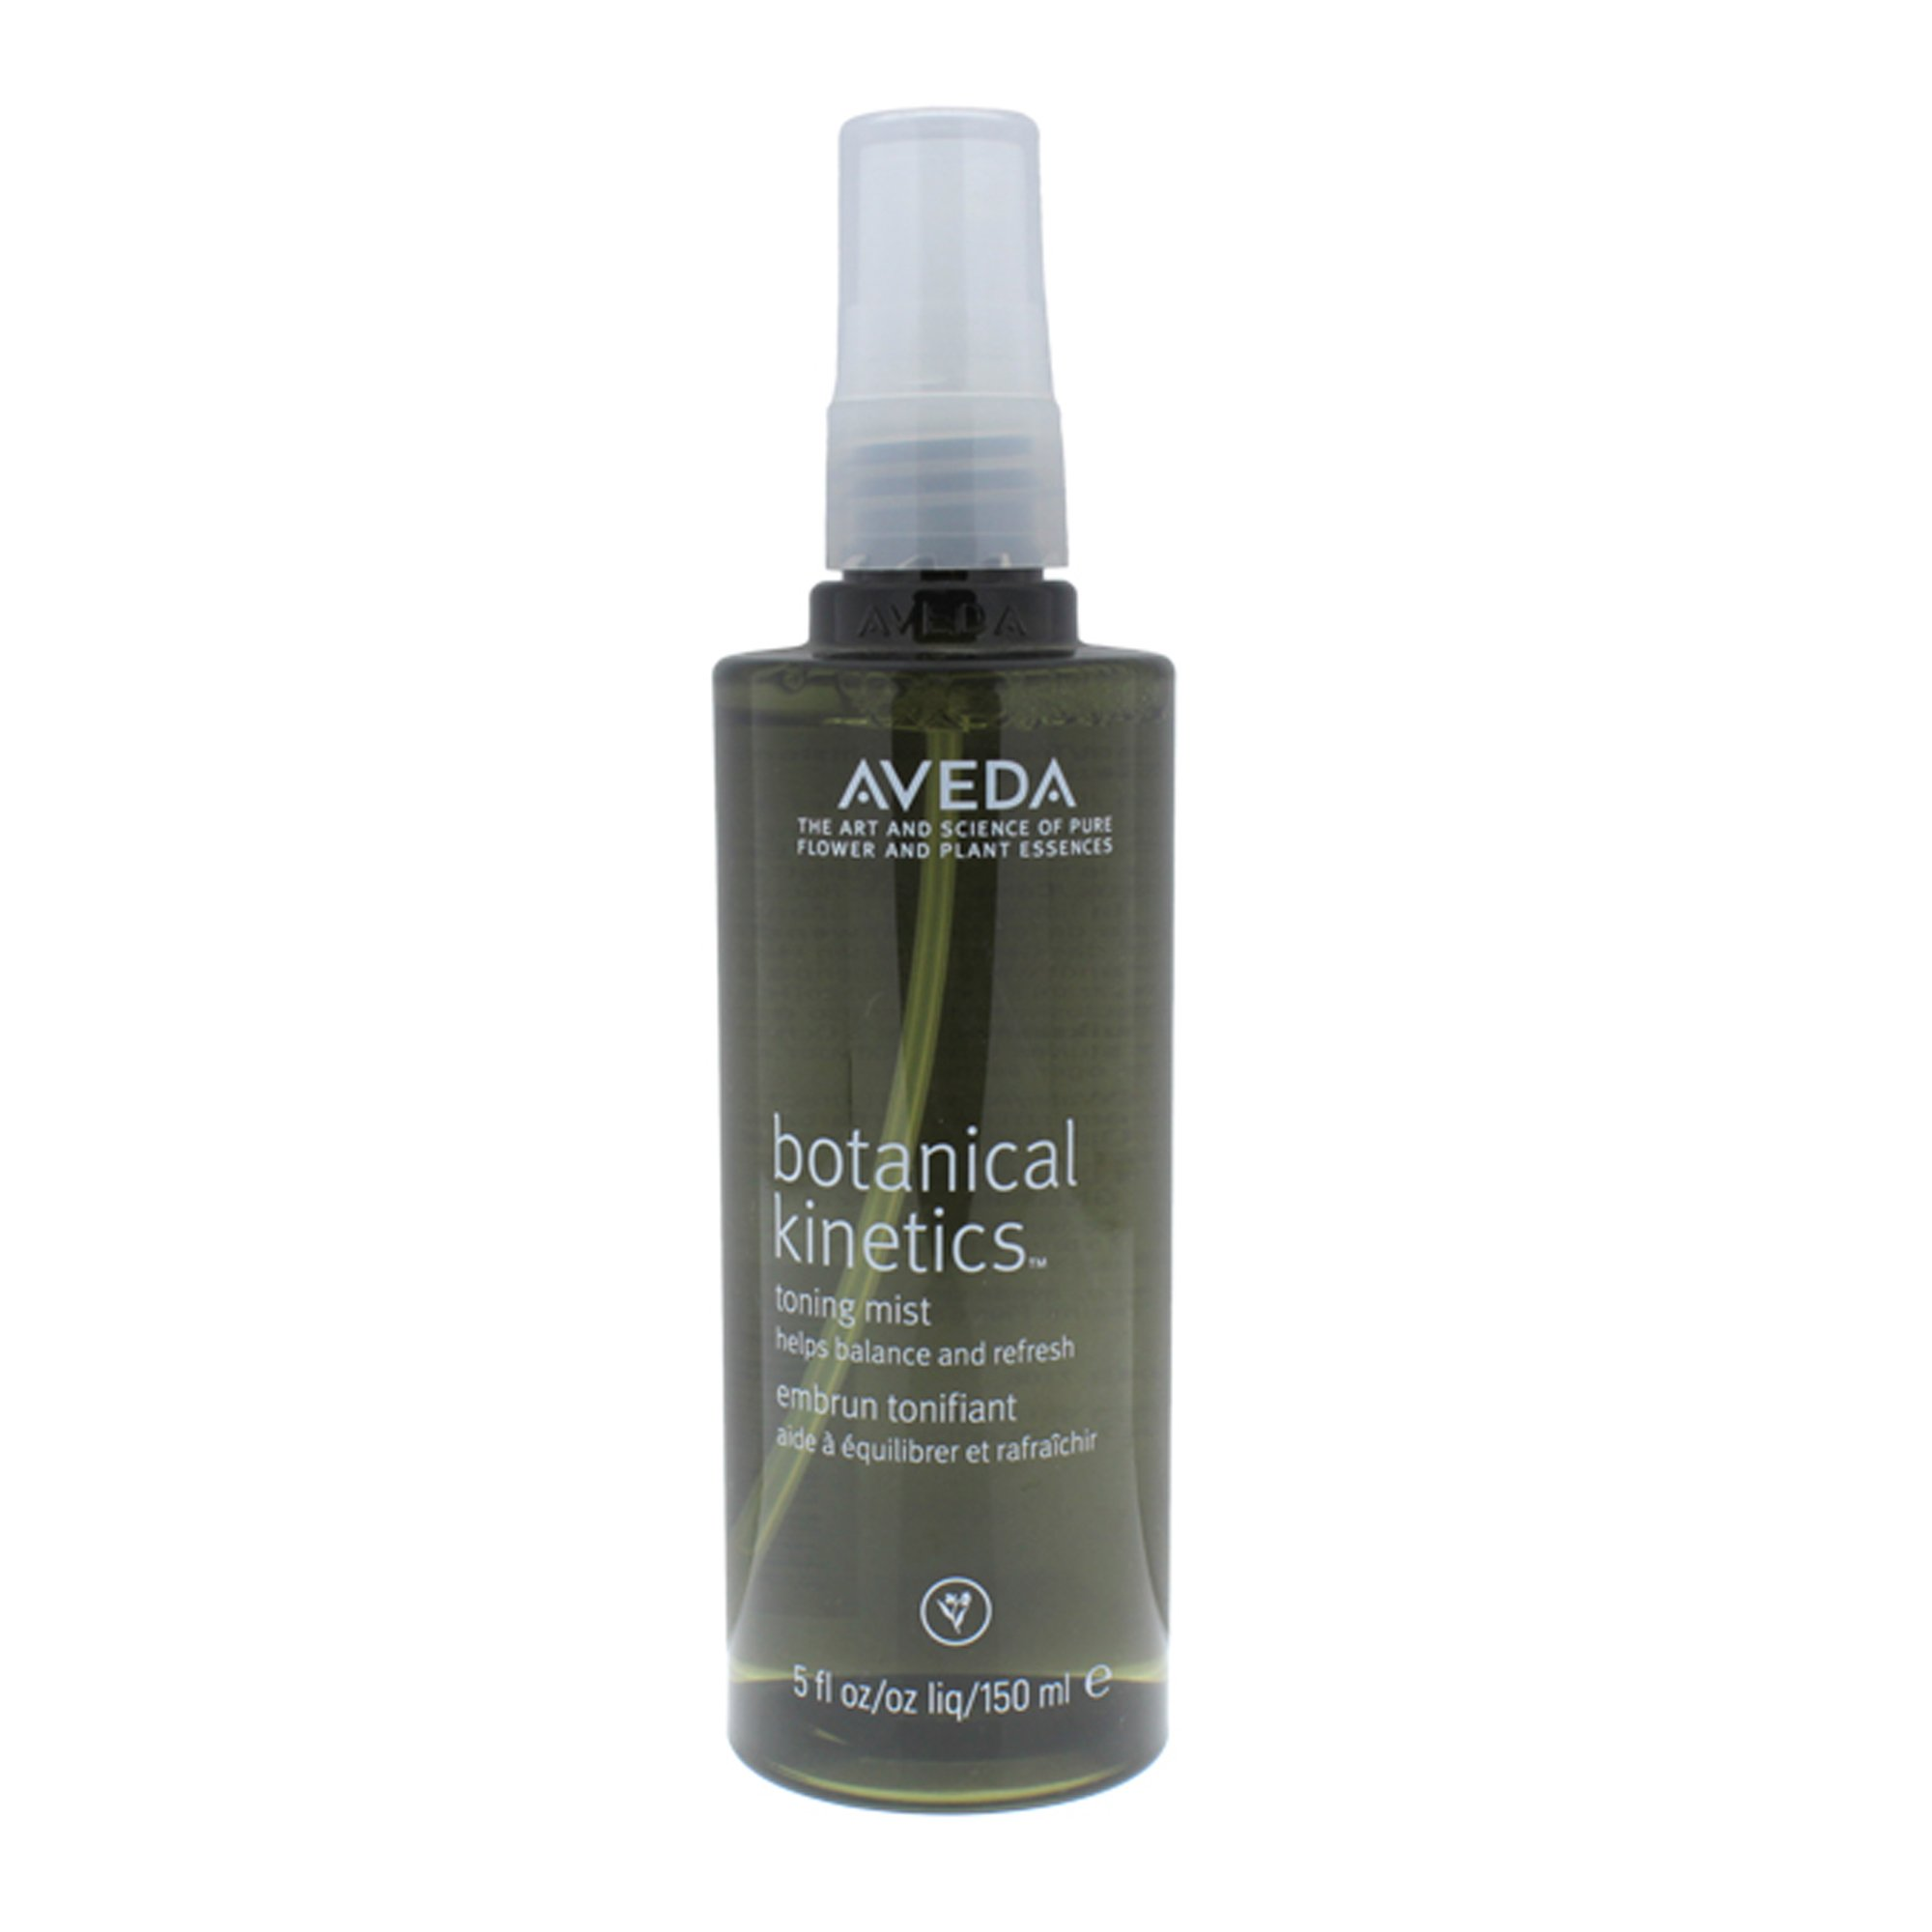 AVEDA by Aveda: Botanical Kinetics Toning Mist 5fl.oz./150ml